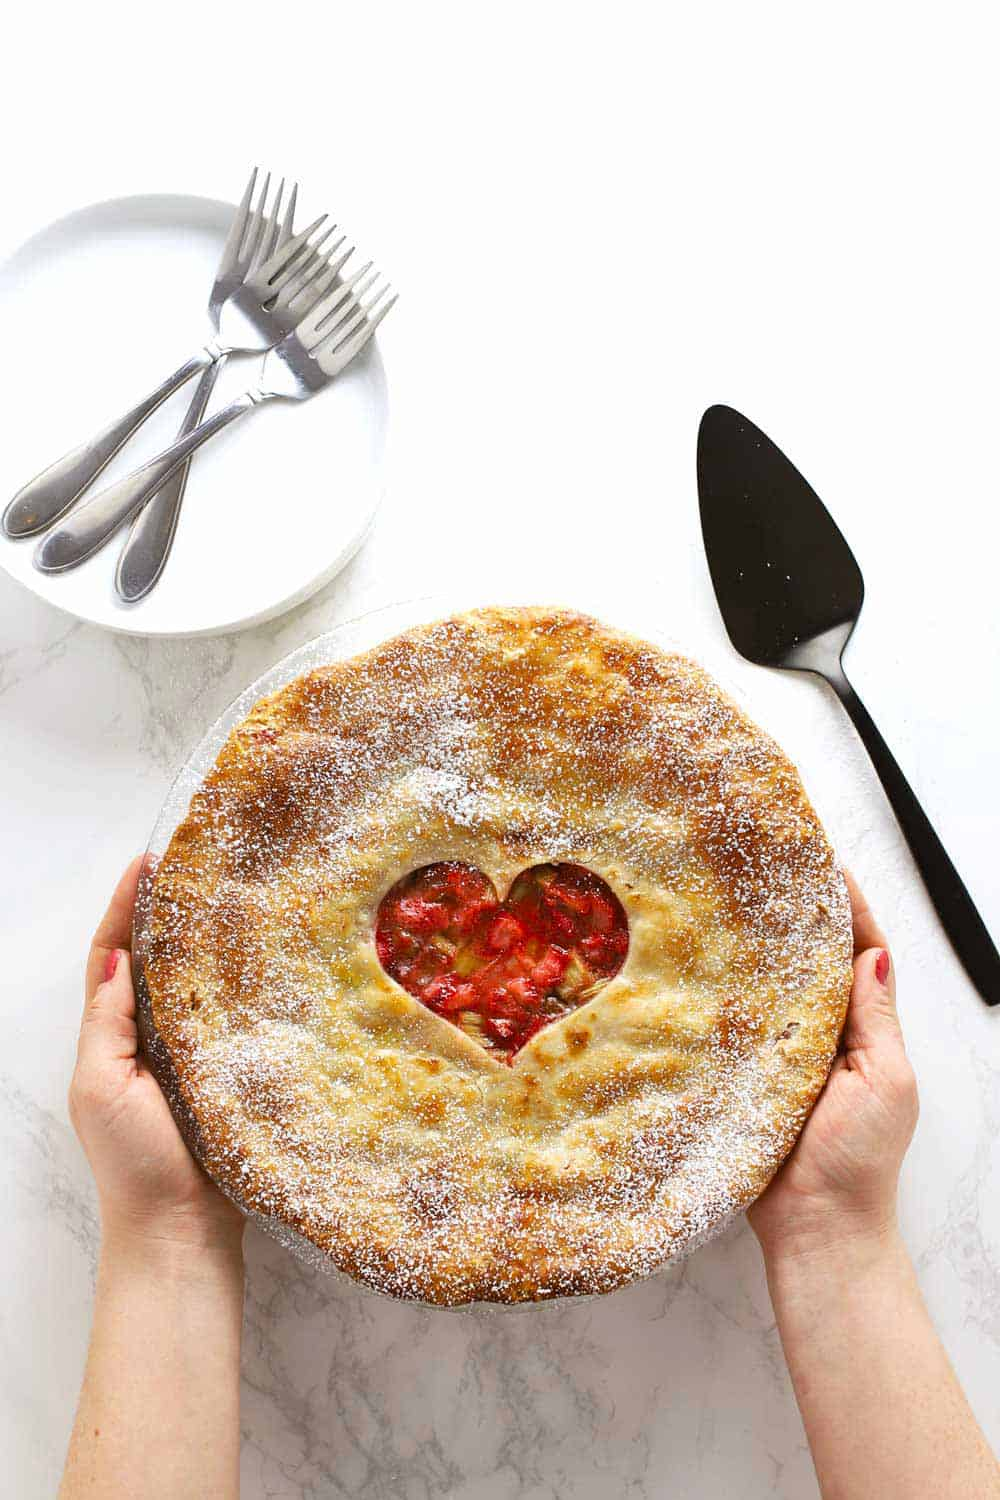 strawberry rhubarb pie with hands